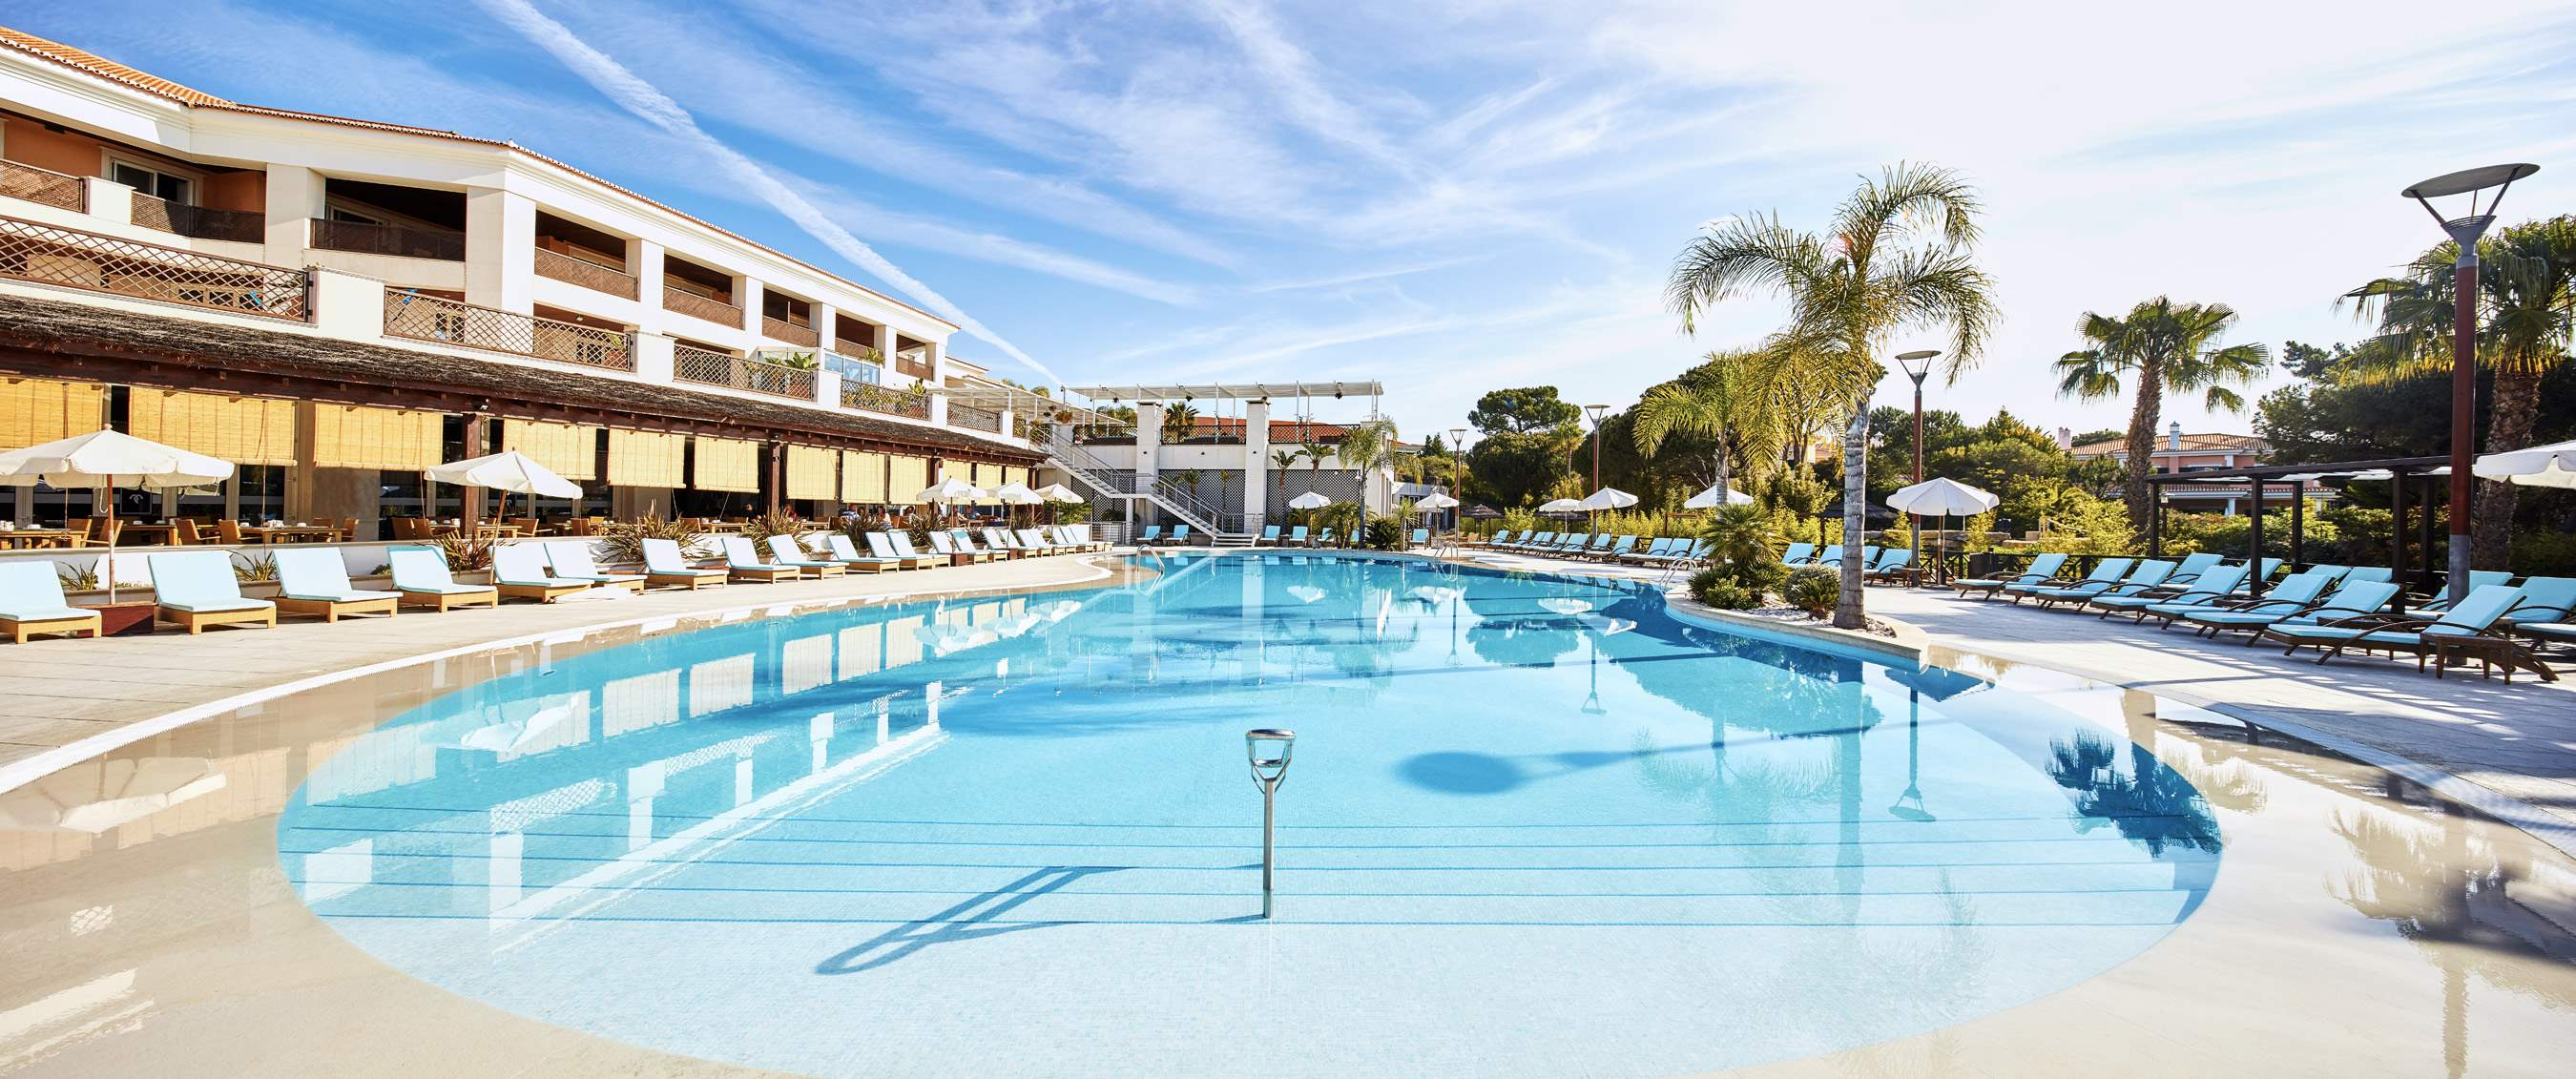 Wyndham Grand Algarve 1 Bedroom, Sunset Suite, Room Only, 1 bedroom apartment in Wyndham Grand Algarve, Algarve Photo #31